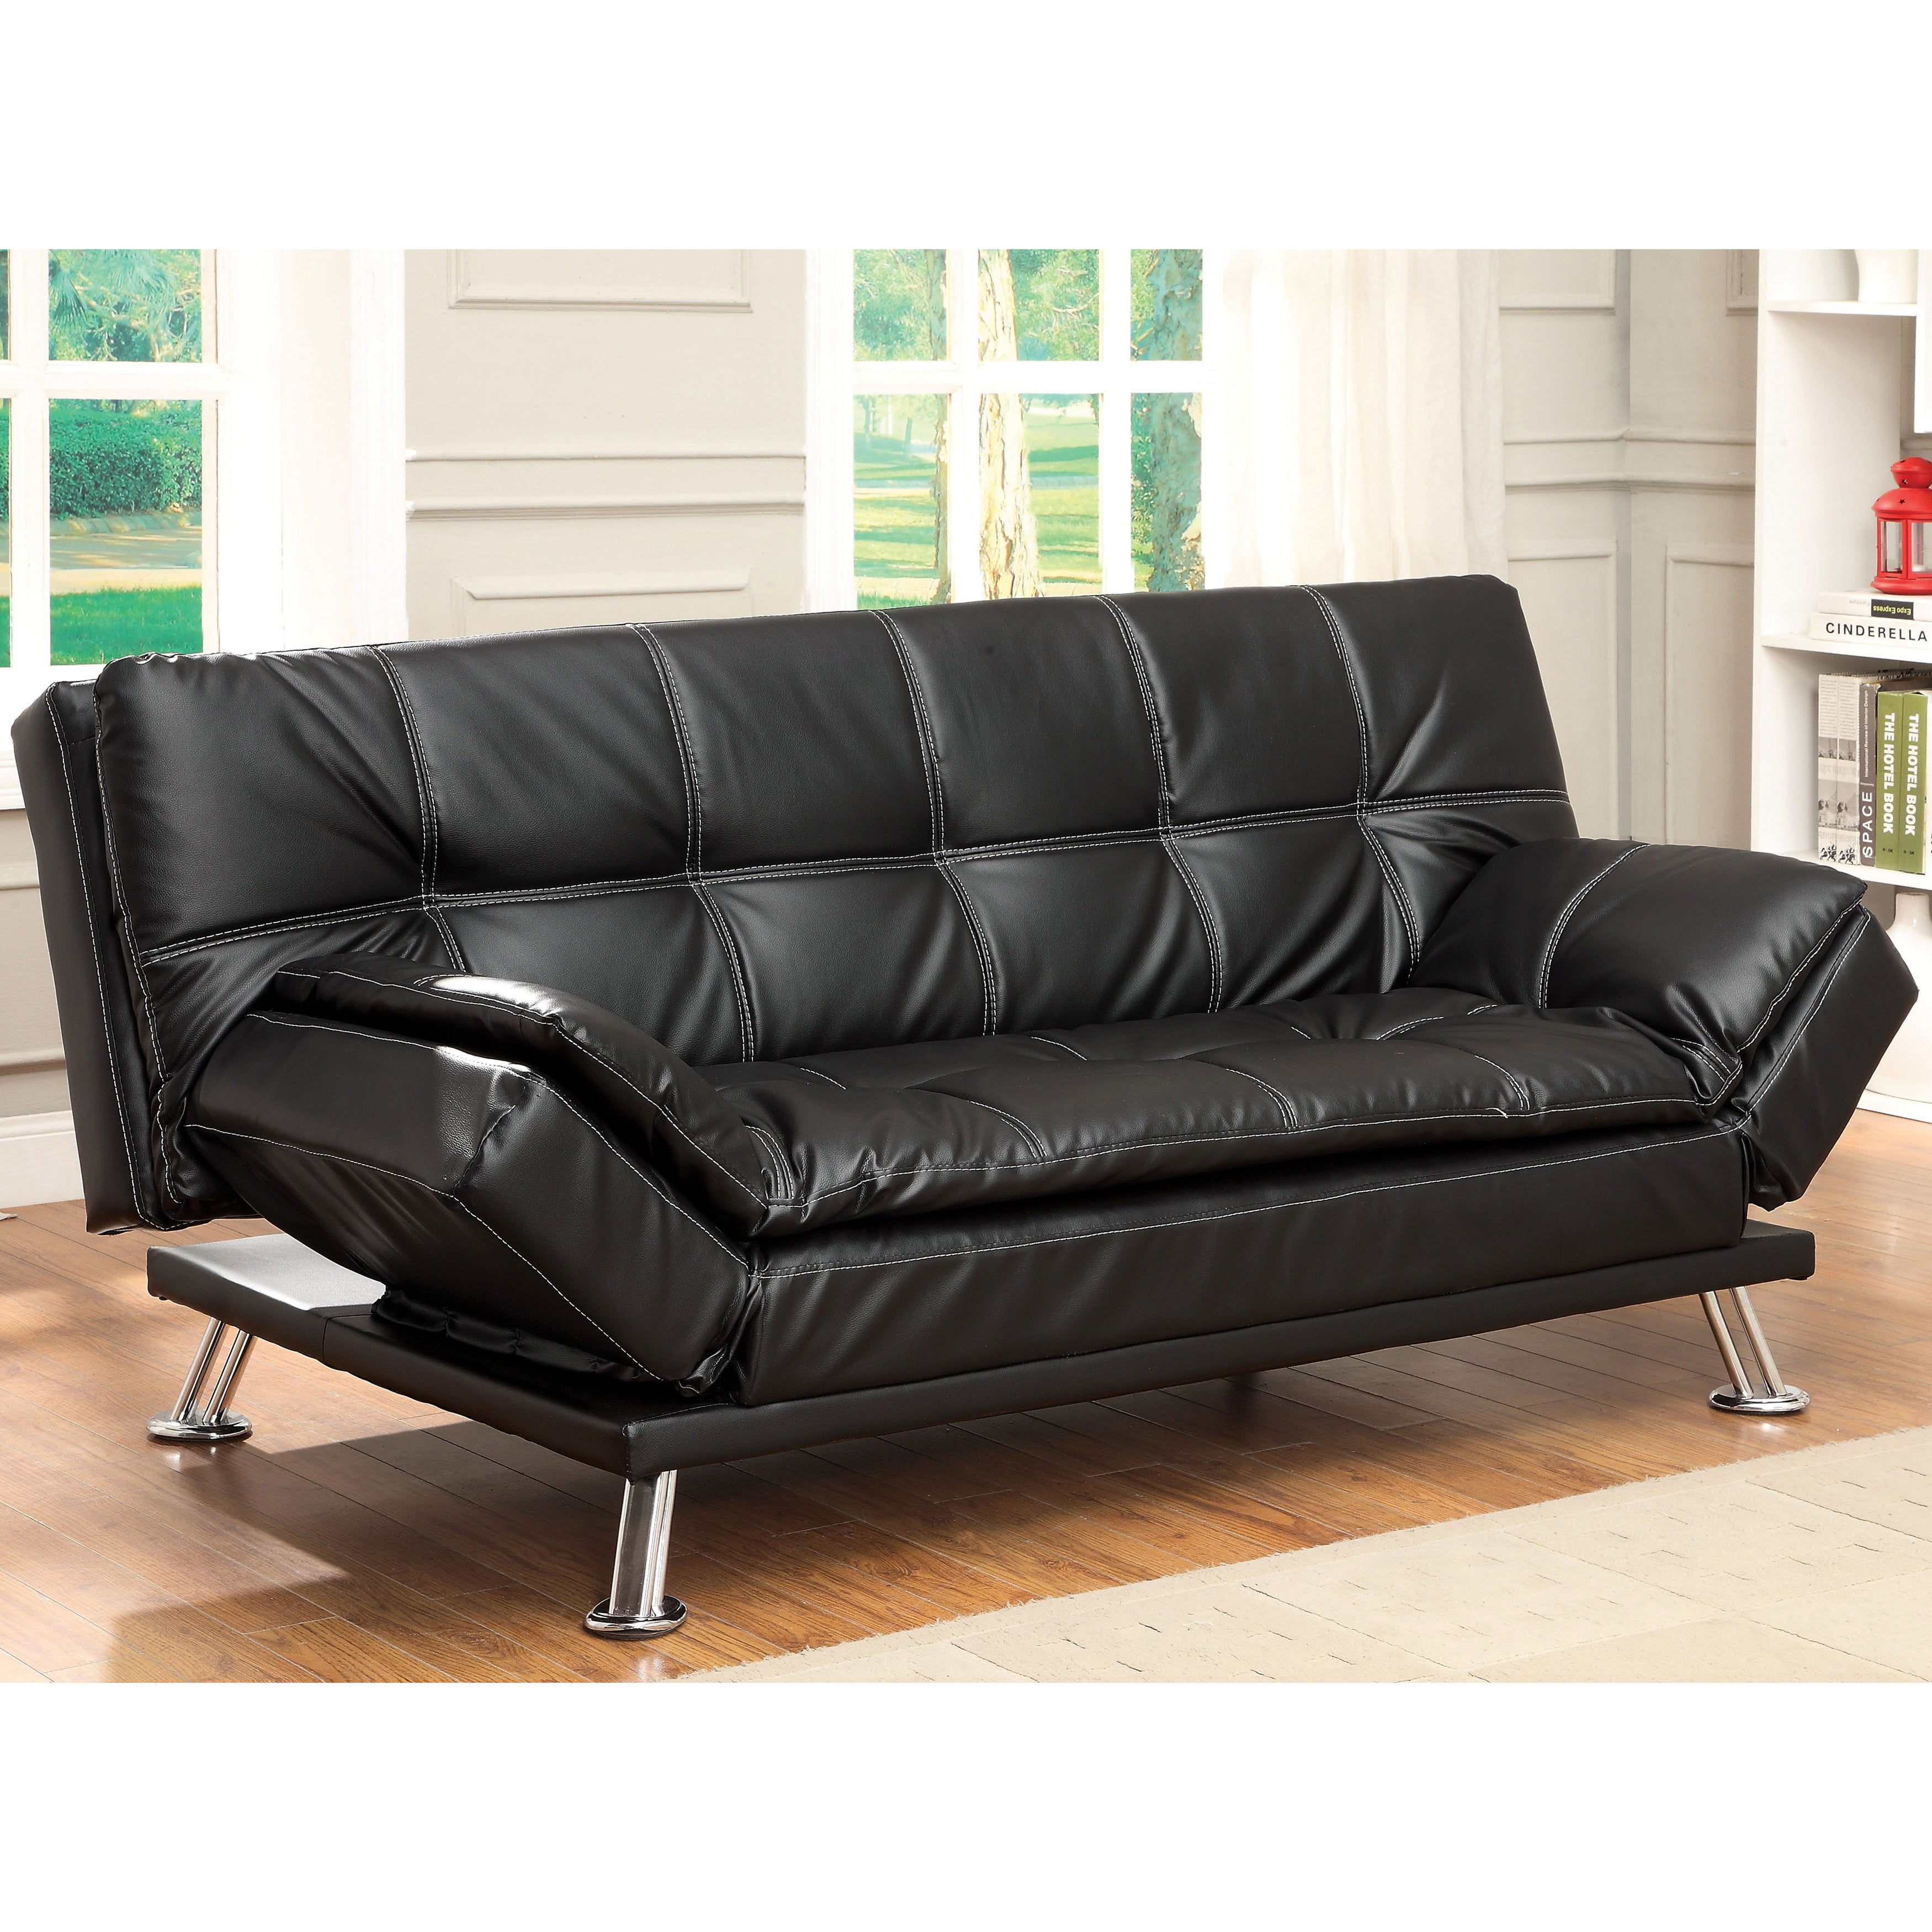 Furniture of america aubreth modern futon sofa overstock for Sofa bed overstock